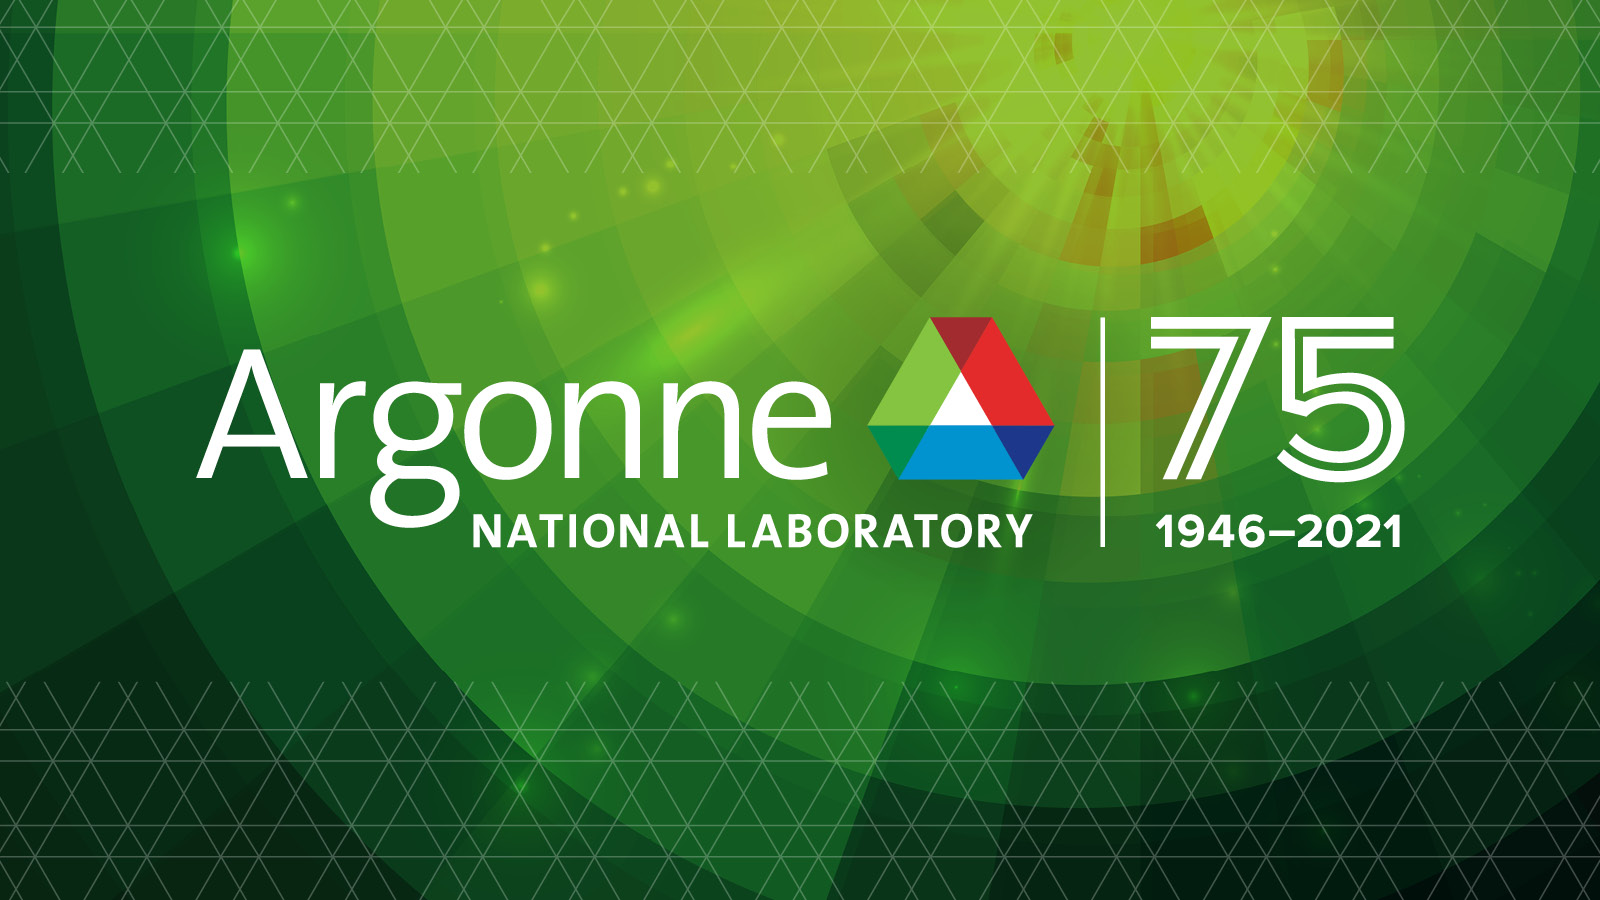 Green Argonne 75th Anniversary image